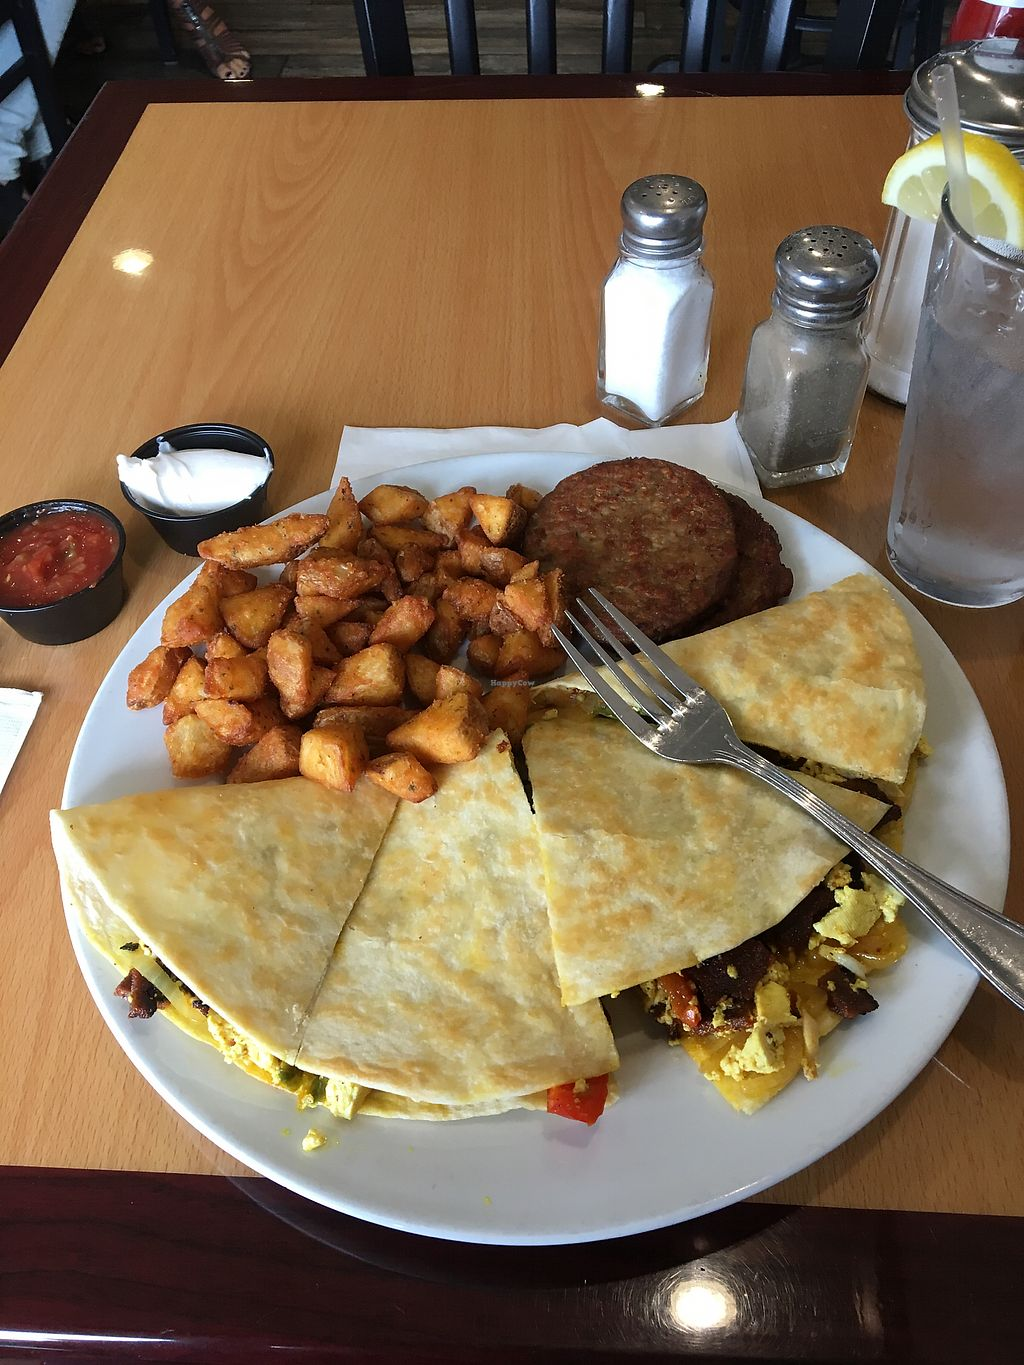 "Photo of Frankie's on Fairview  by <a href=""/members/profile/chelsjss"">chelsjss</a> <br/>Breakfast quesadilla <br/> September 6, 2017  - <a href='/contact/abuse/image/56280/301501'>Report</a>"